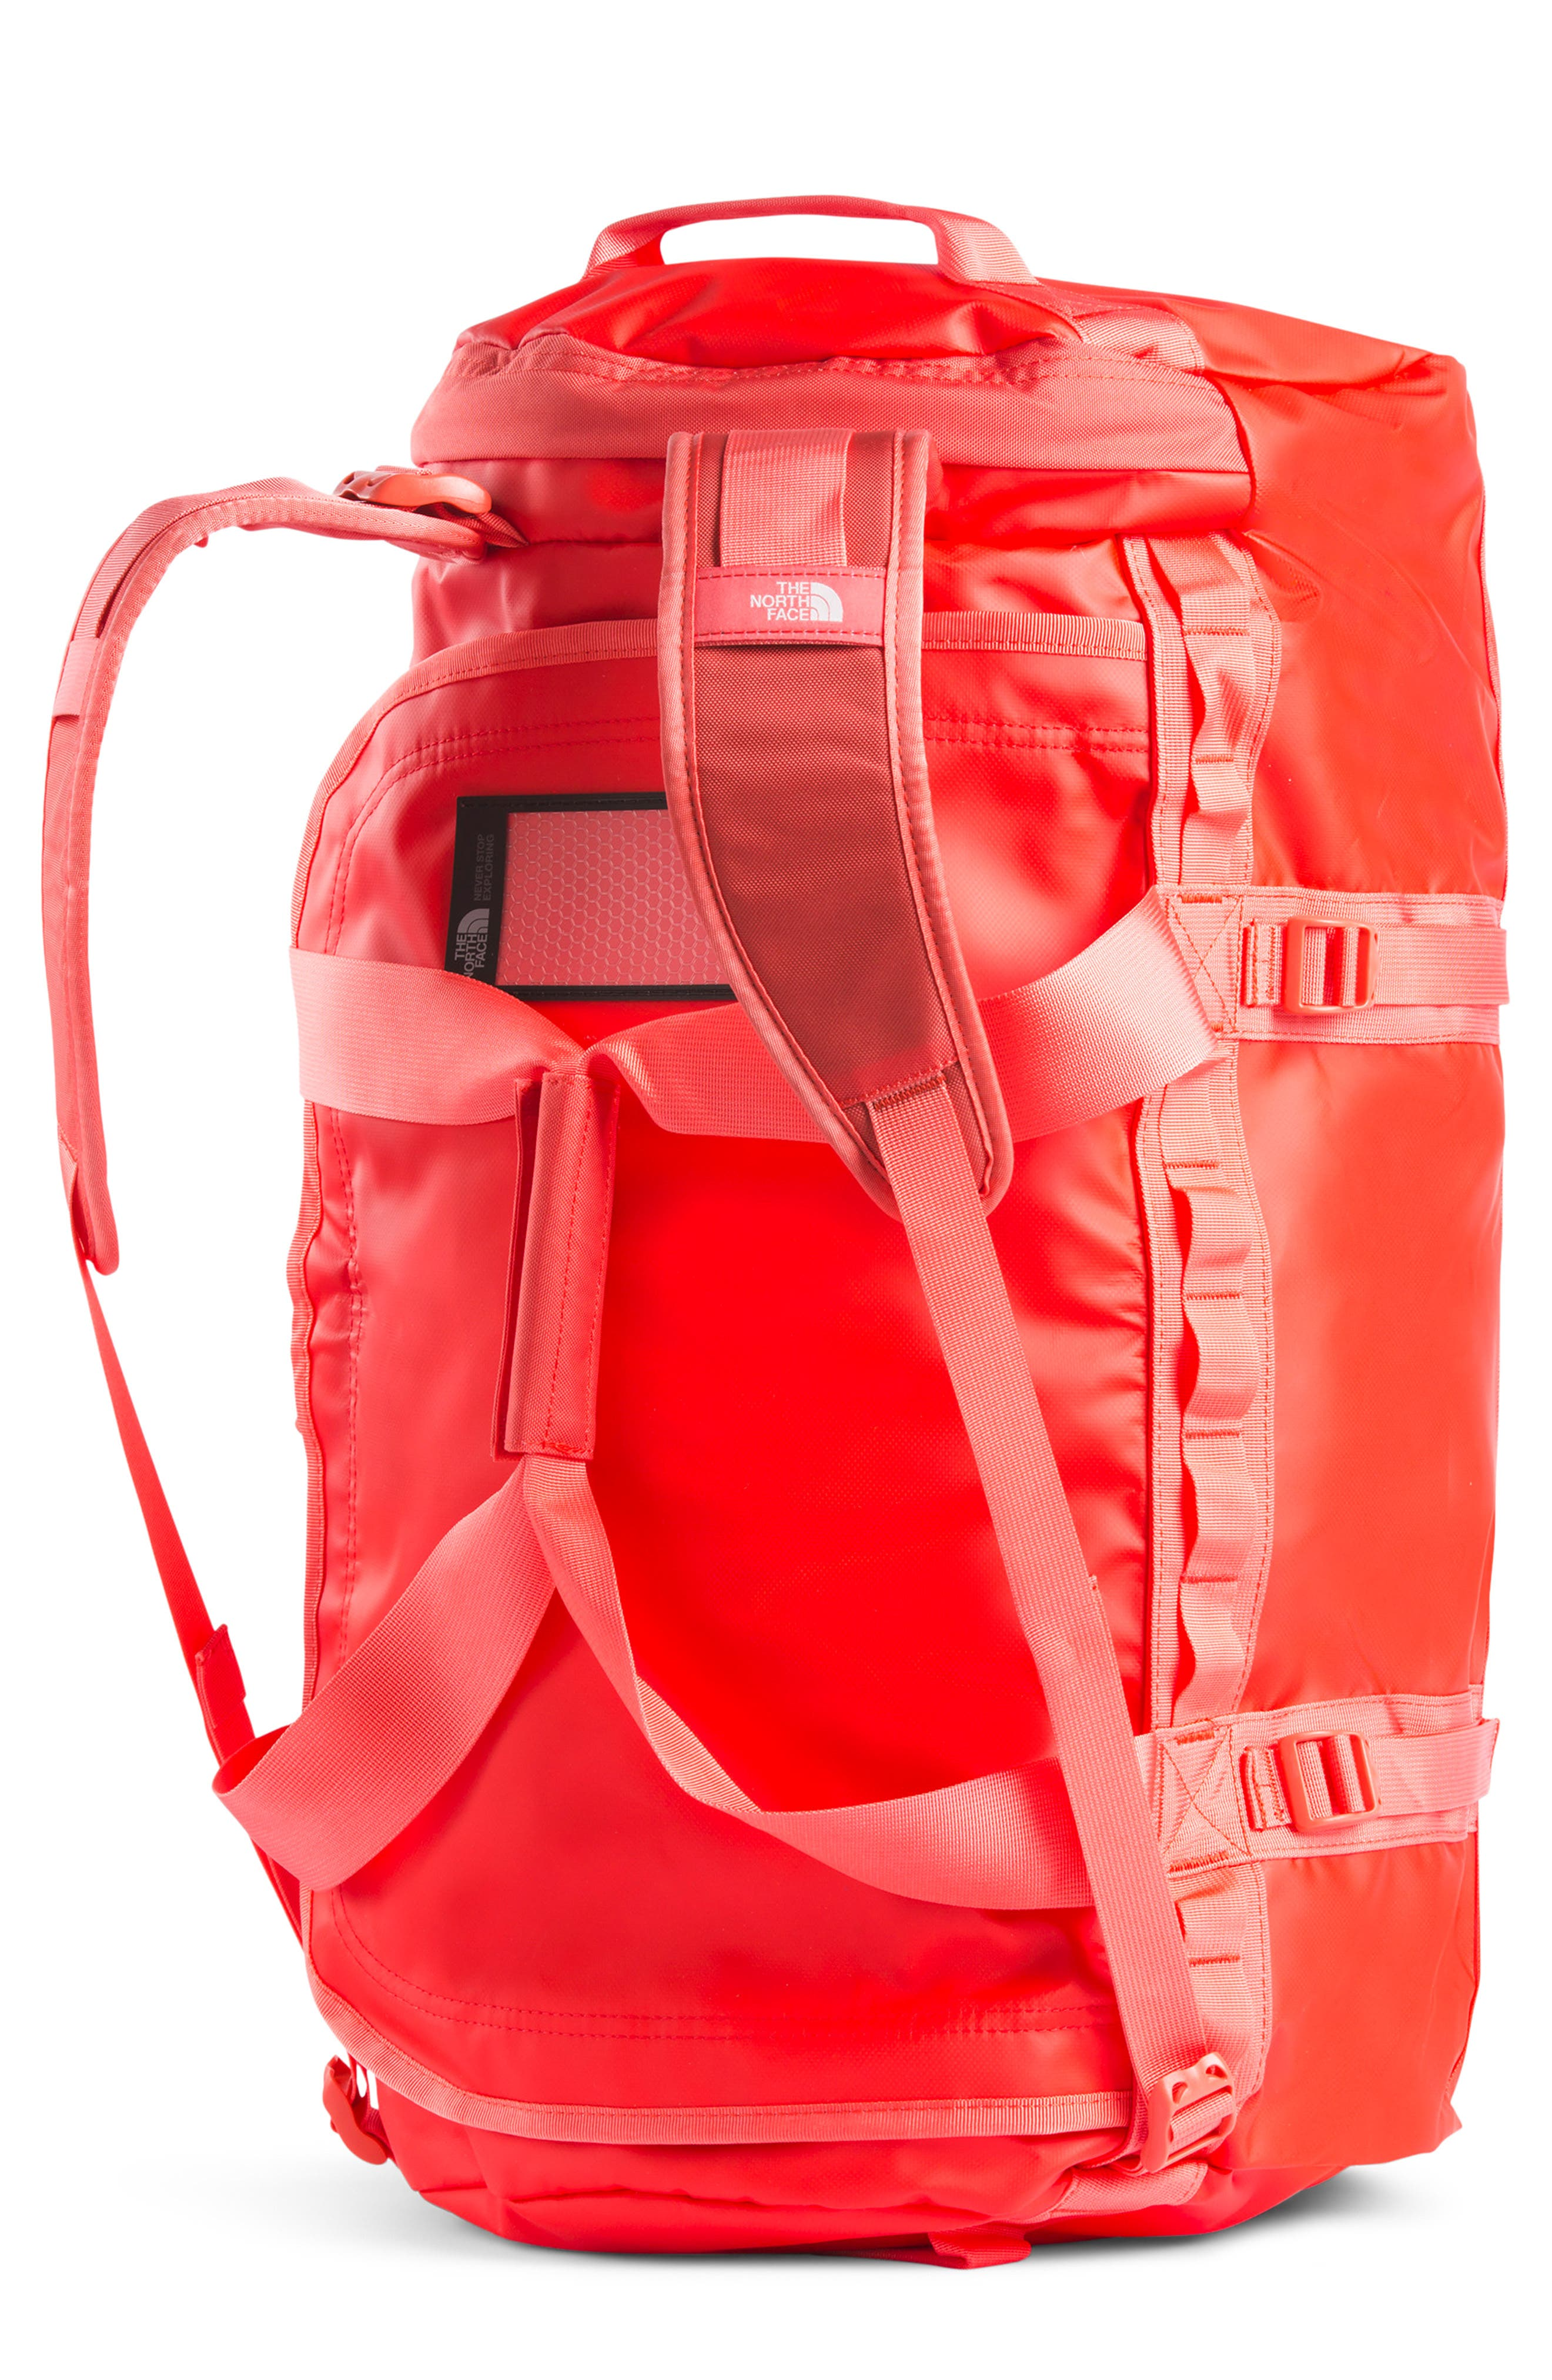 THE NORTH FACE Base Camp Medium Duffle Bag, Main, color, JUICY RED/ SPICED CORAL